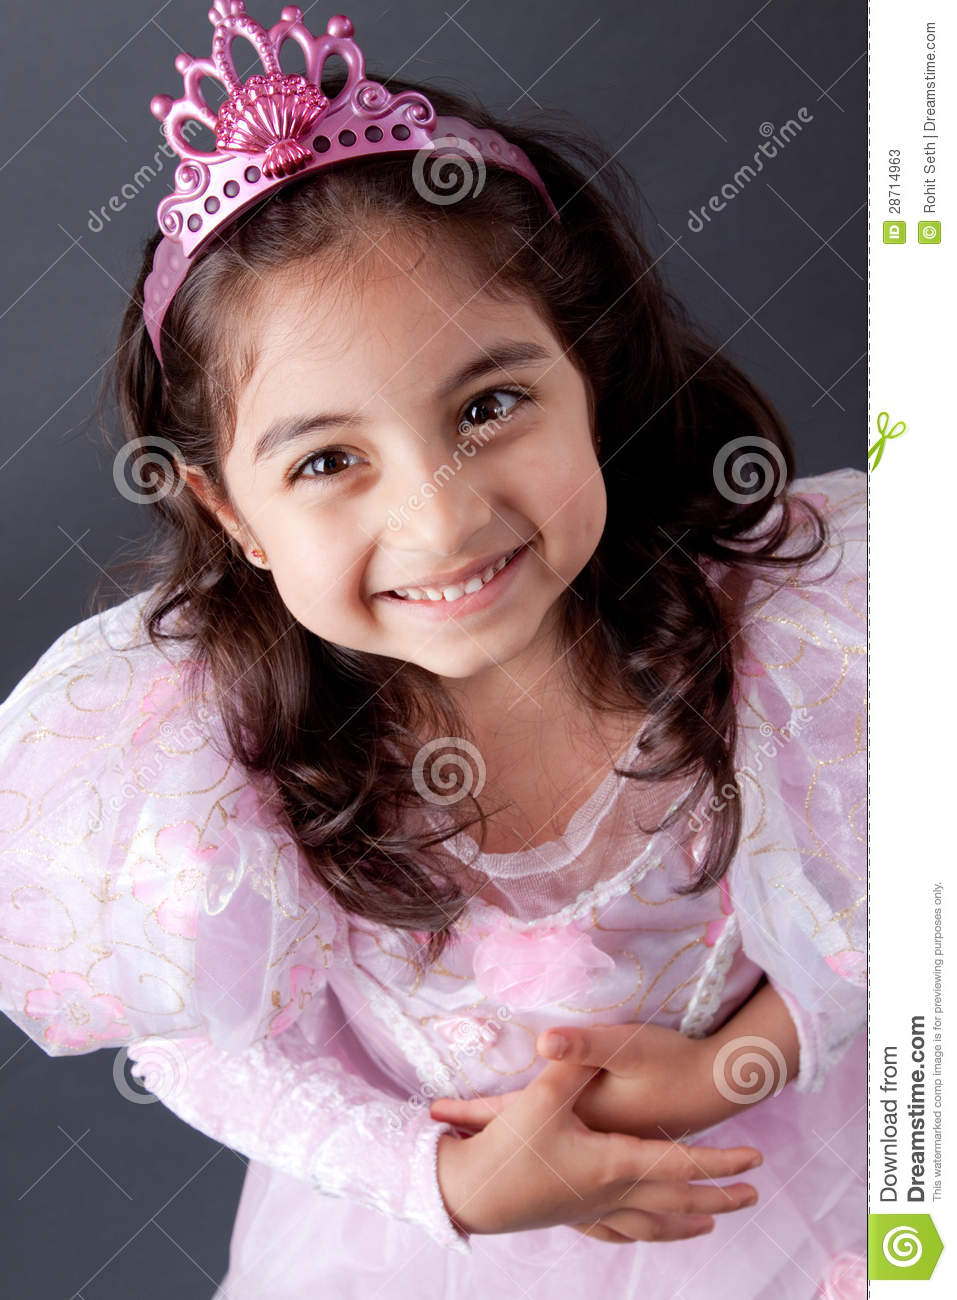 Beautifull Indian girl in Princess outfit